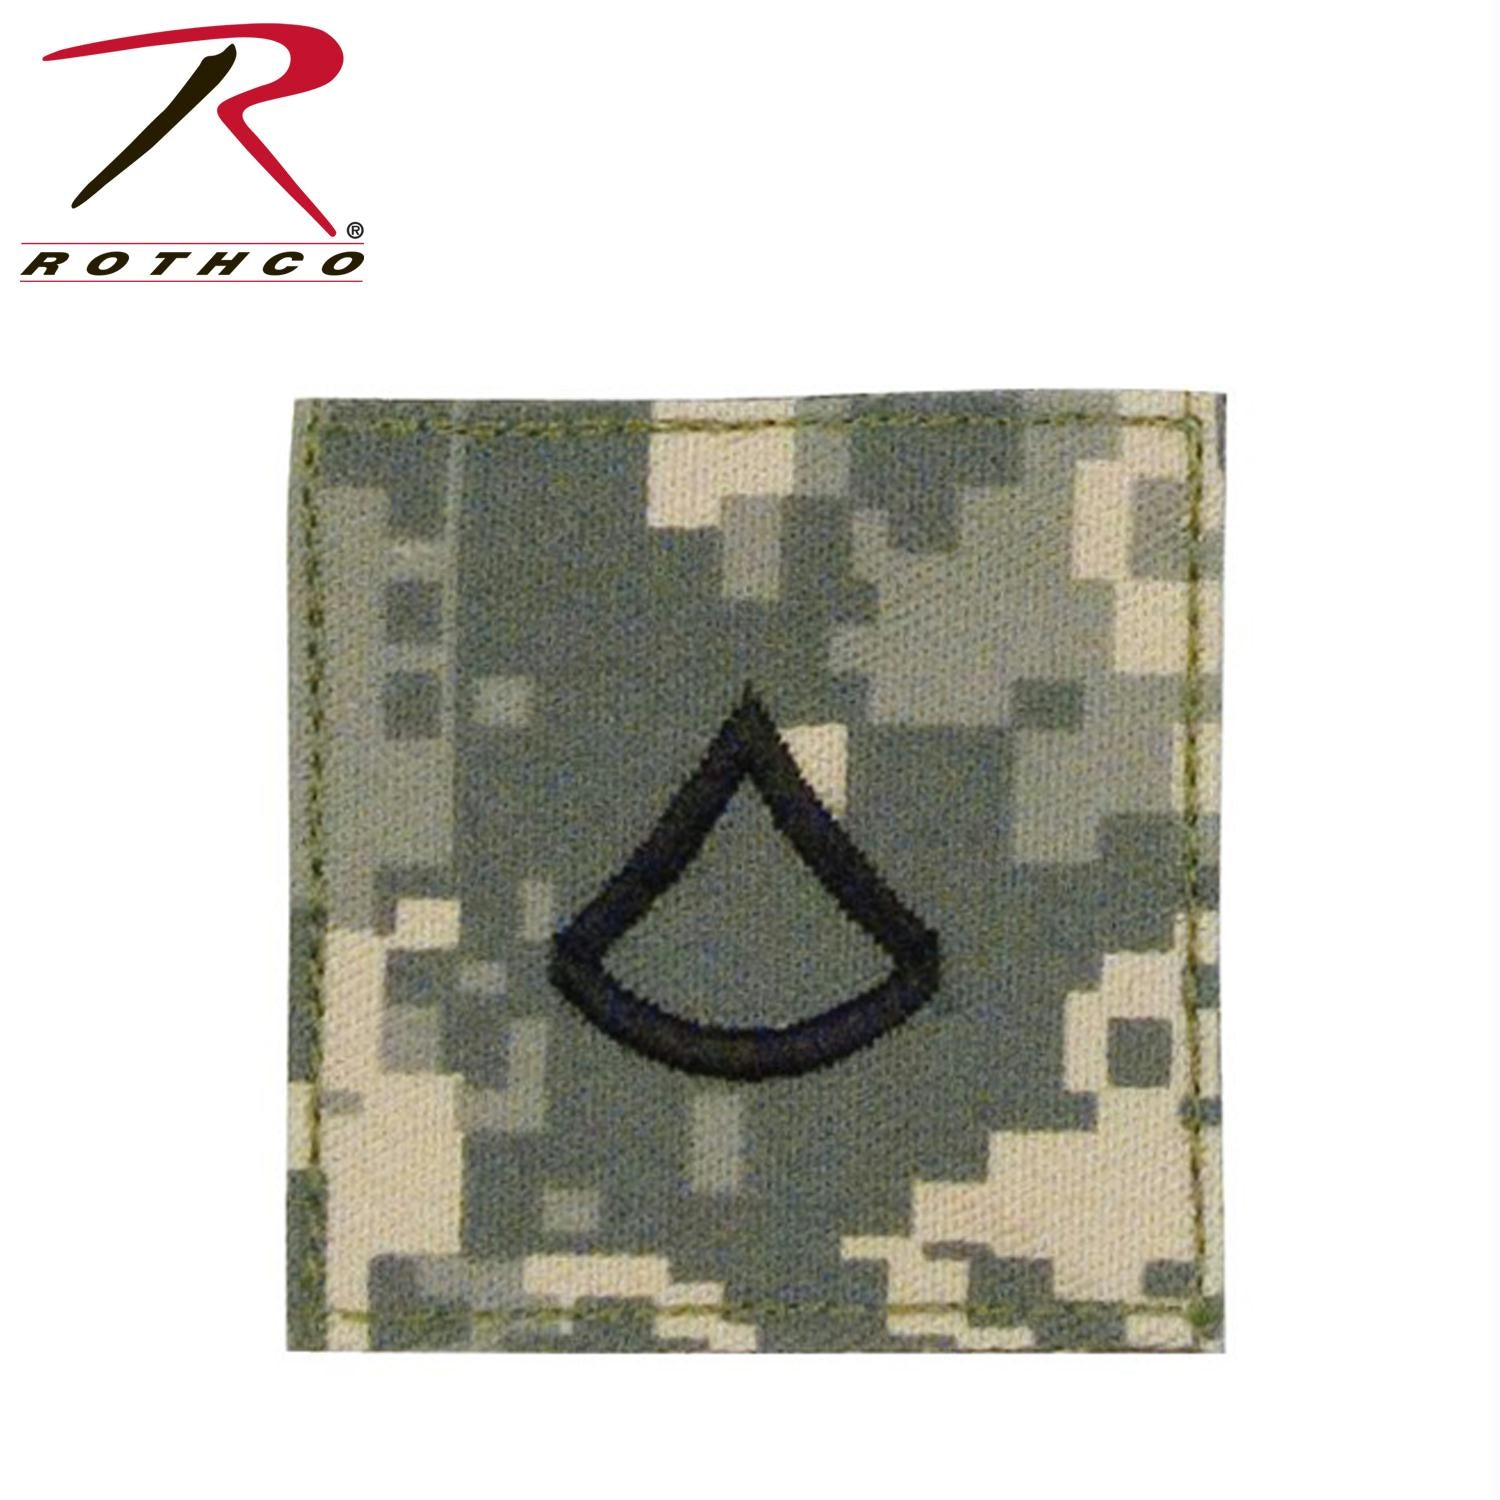 Official U.S. Made Embroidered Rank Insignia - Private 1st Class - ACU Digital Camo